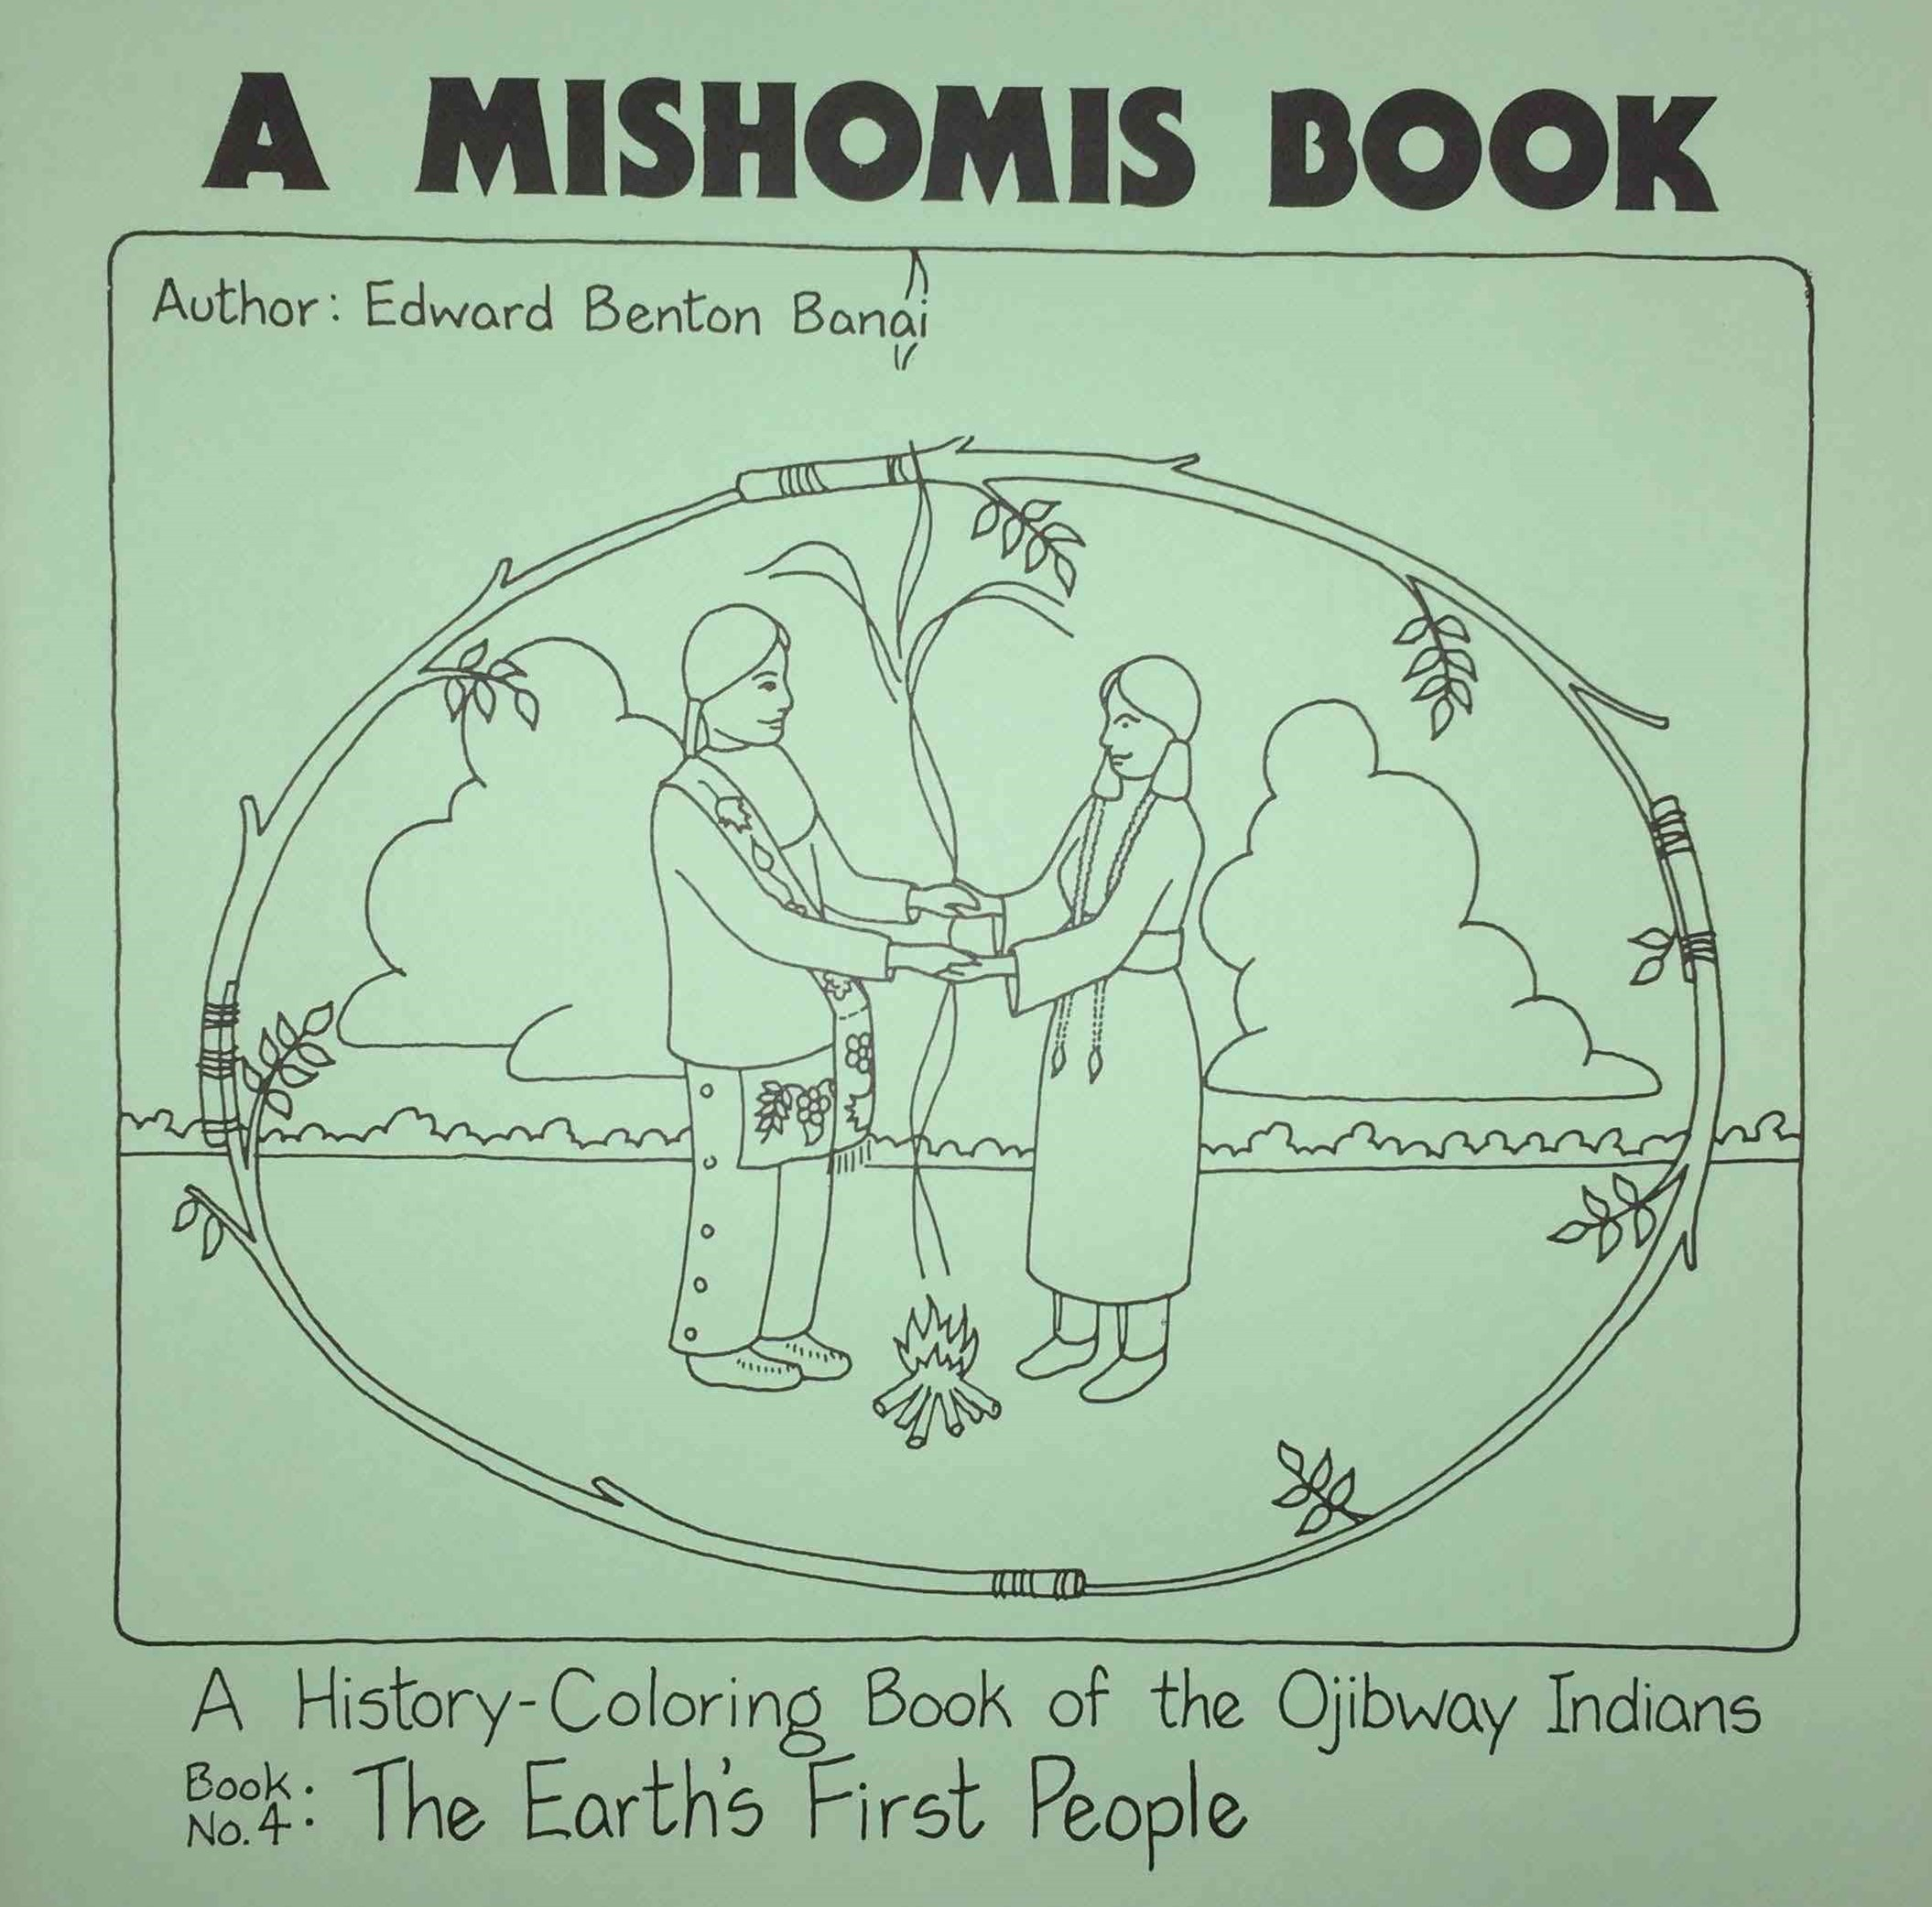 Mishomis Book, A History-Coloring Book of the Ojibway Indians